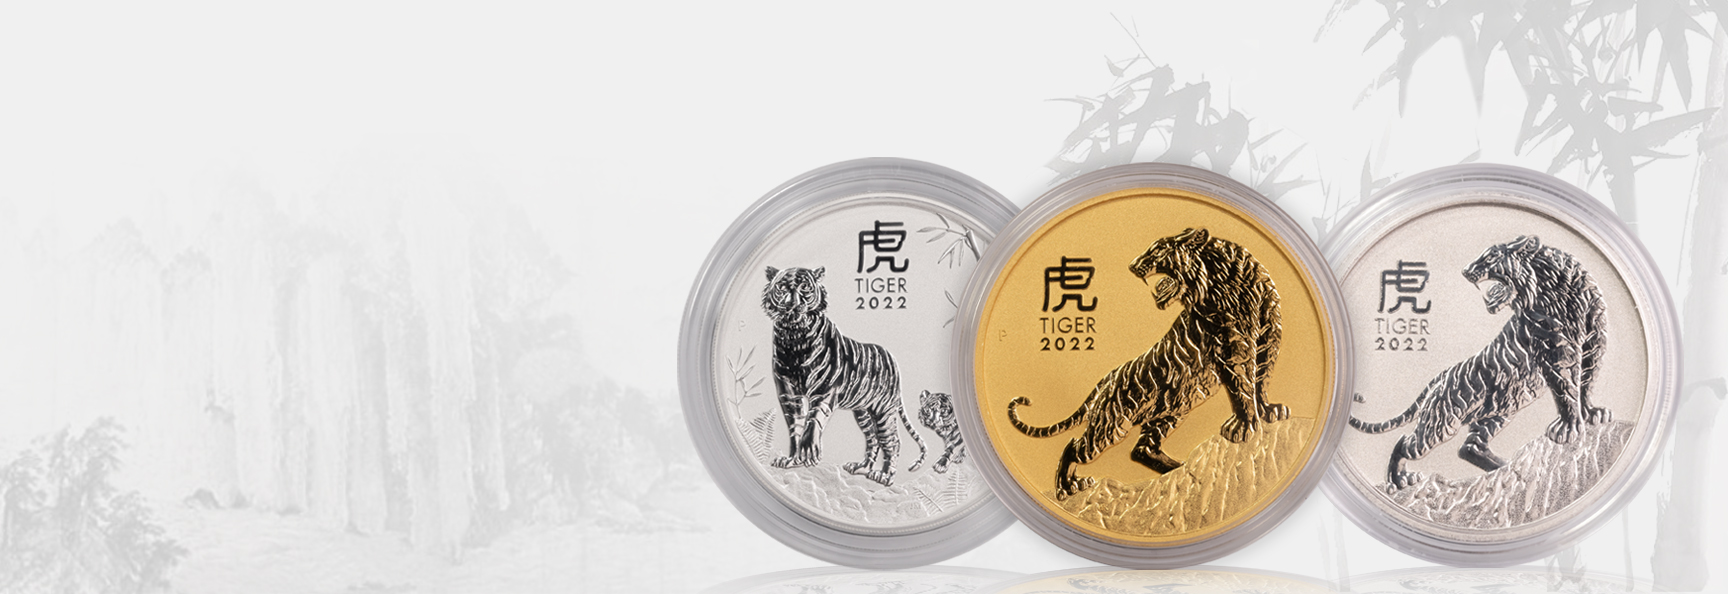 Australian Lunar Series 2022  - Year of the Tiger Now Available for Ordering